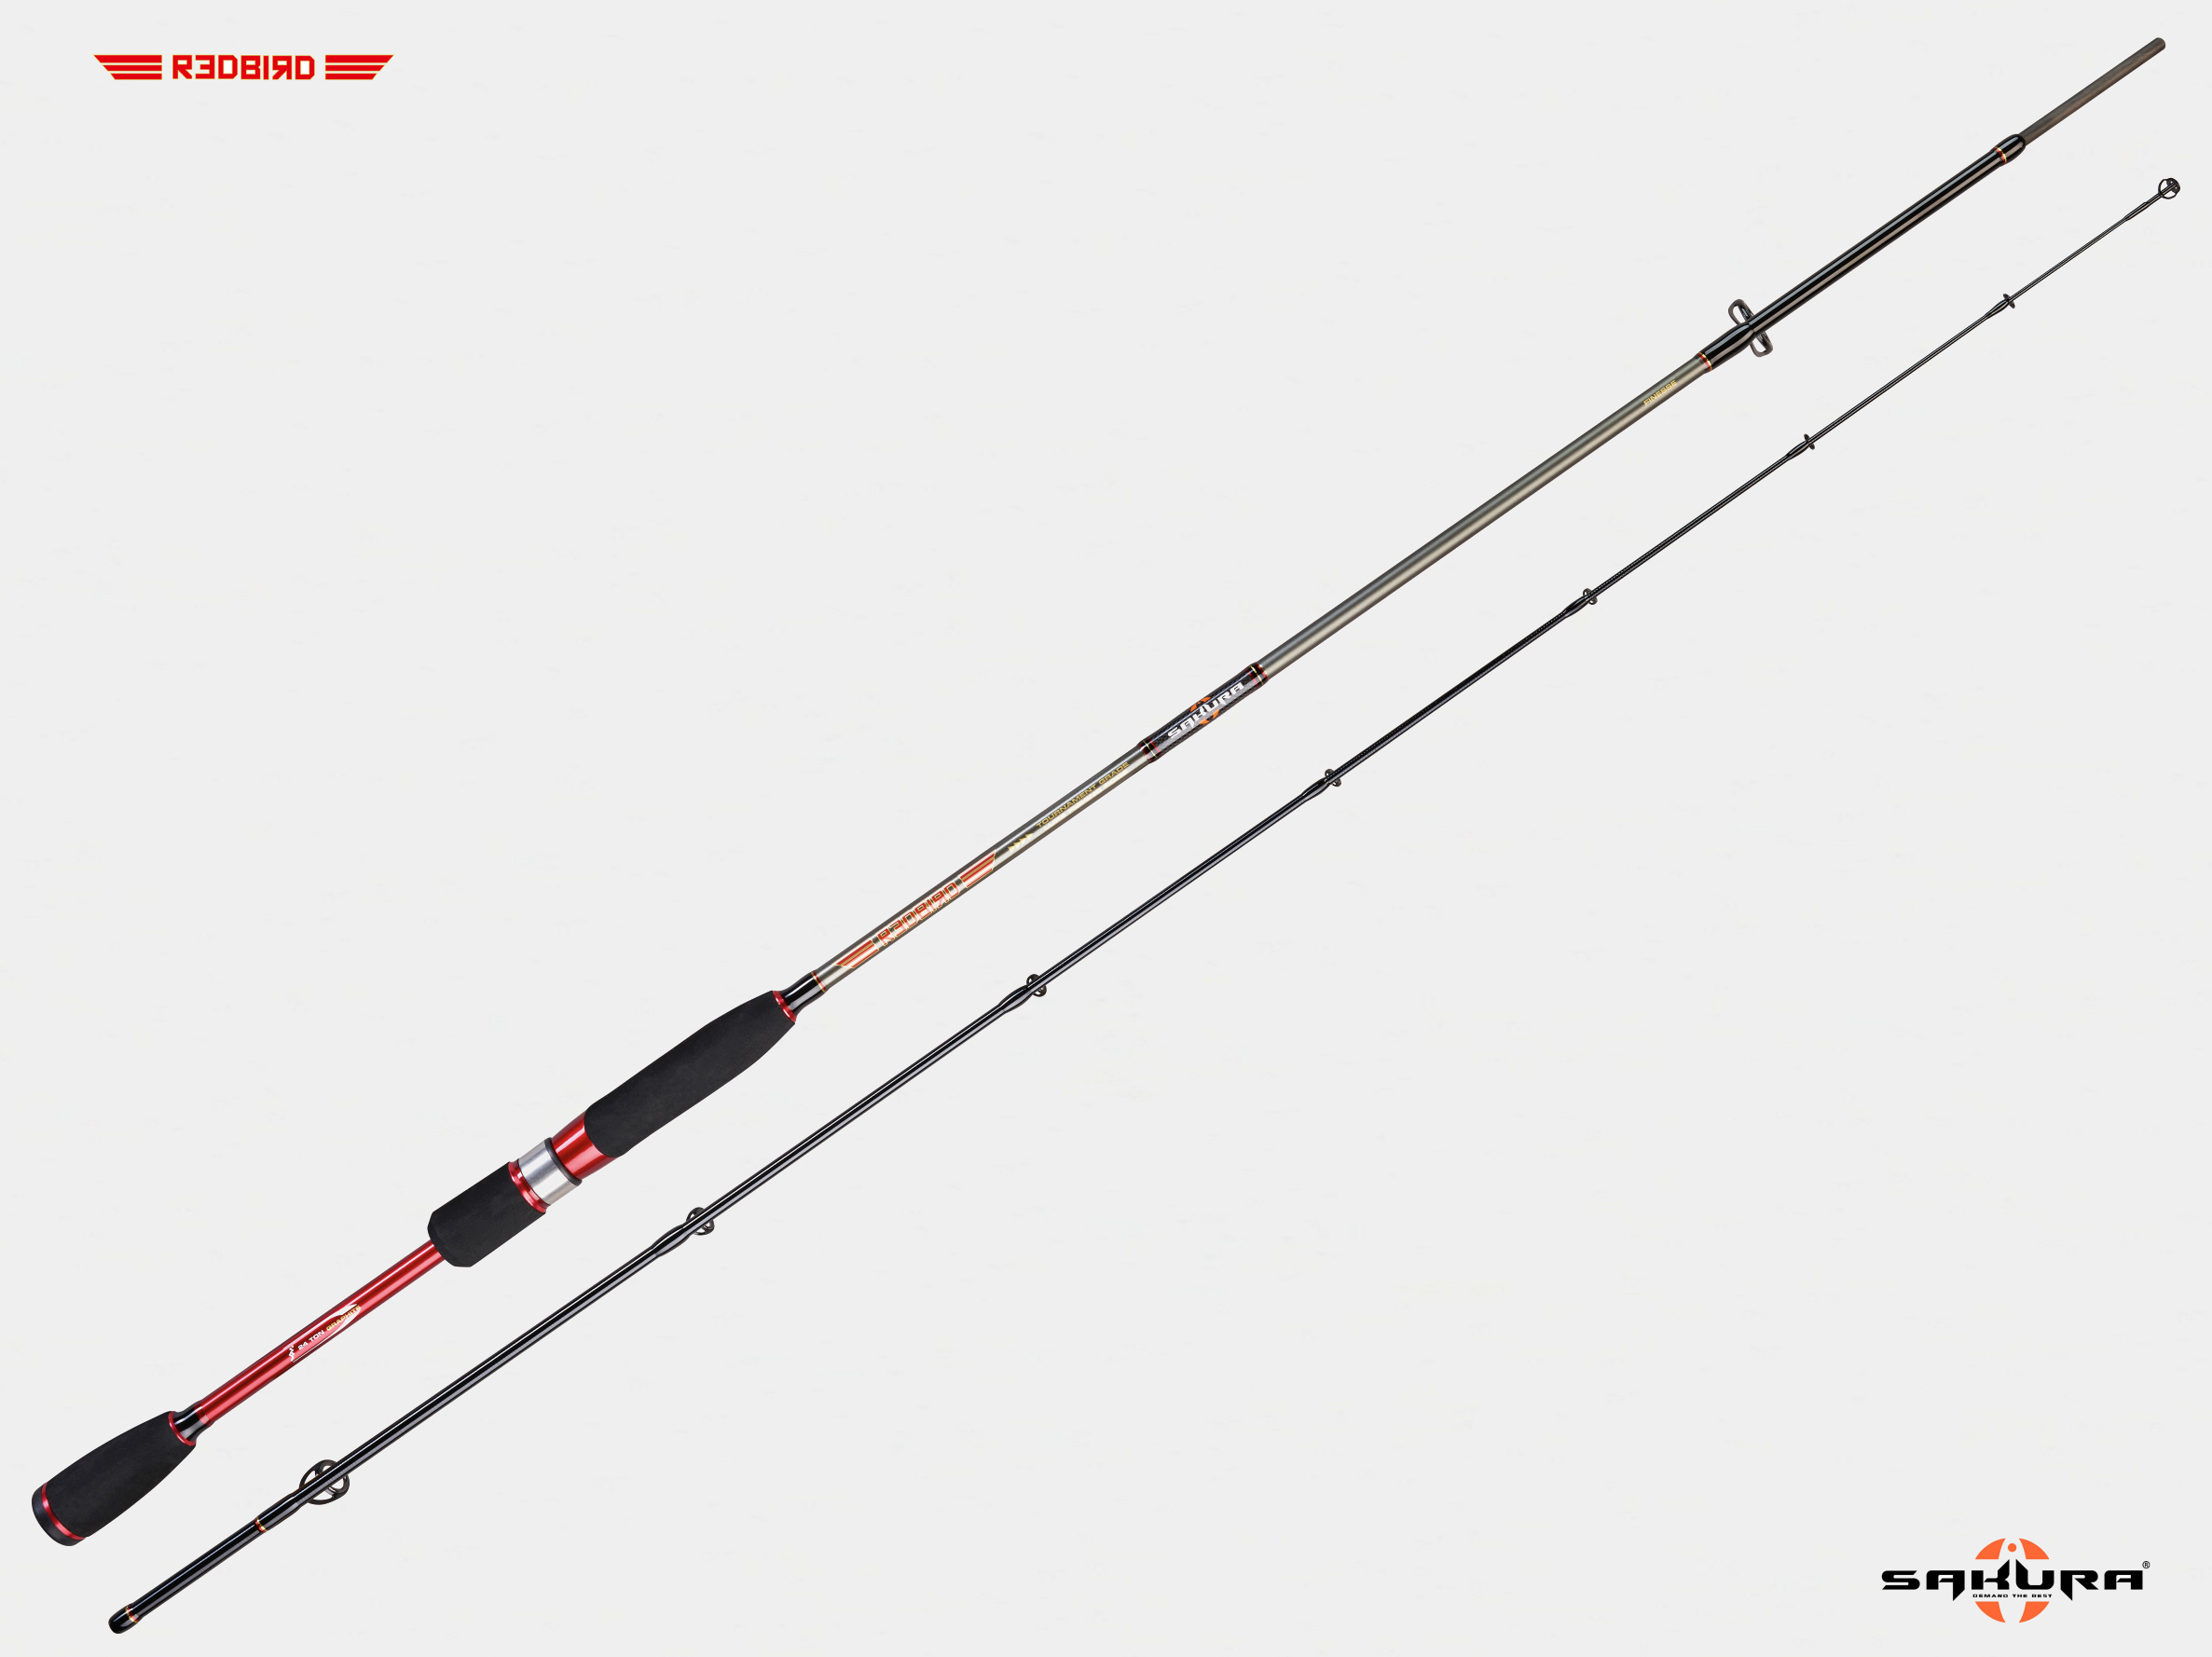 RED BIRD Spin 2-7 g / 183 cm - Light